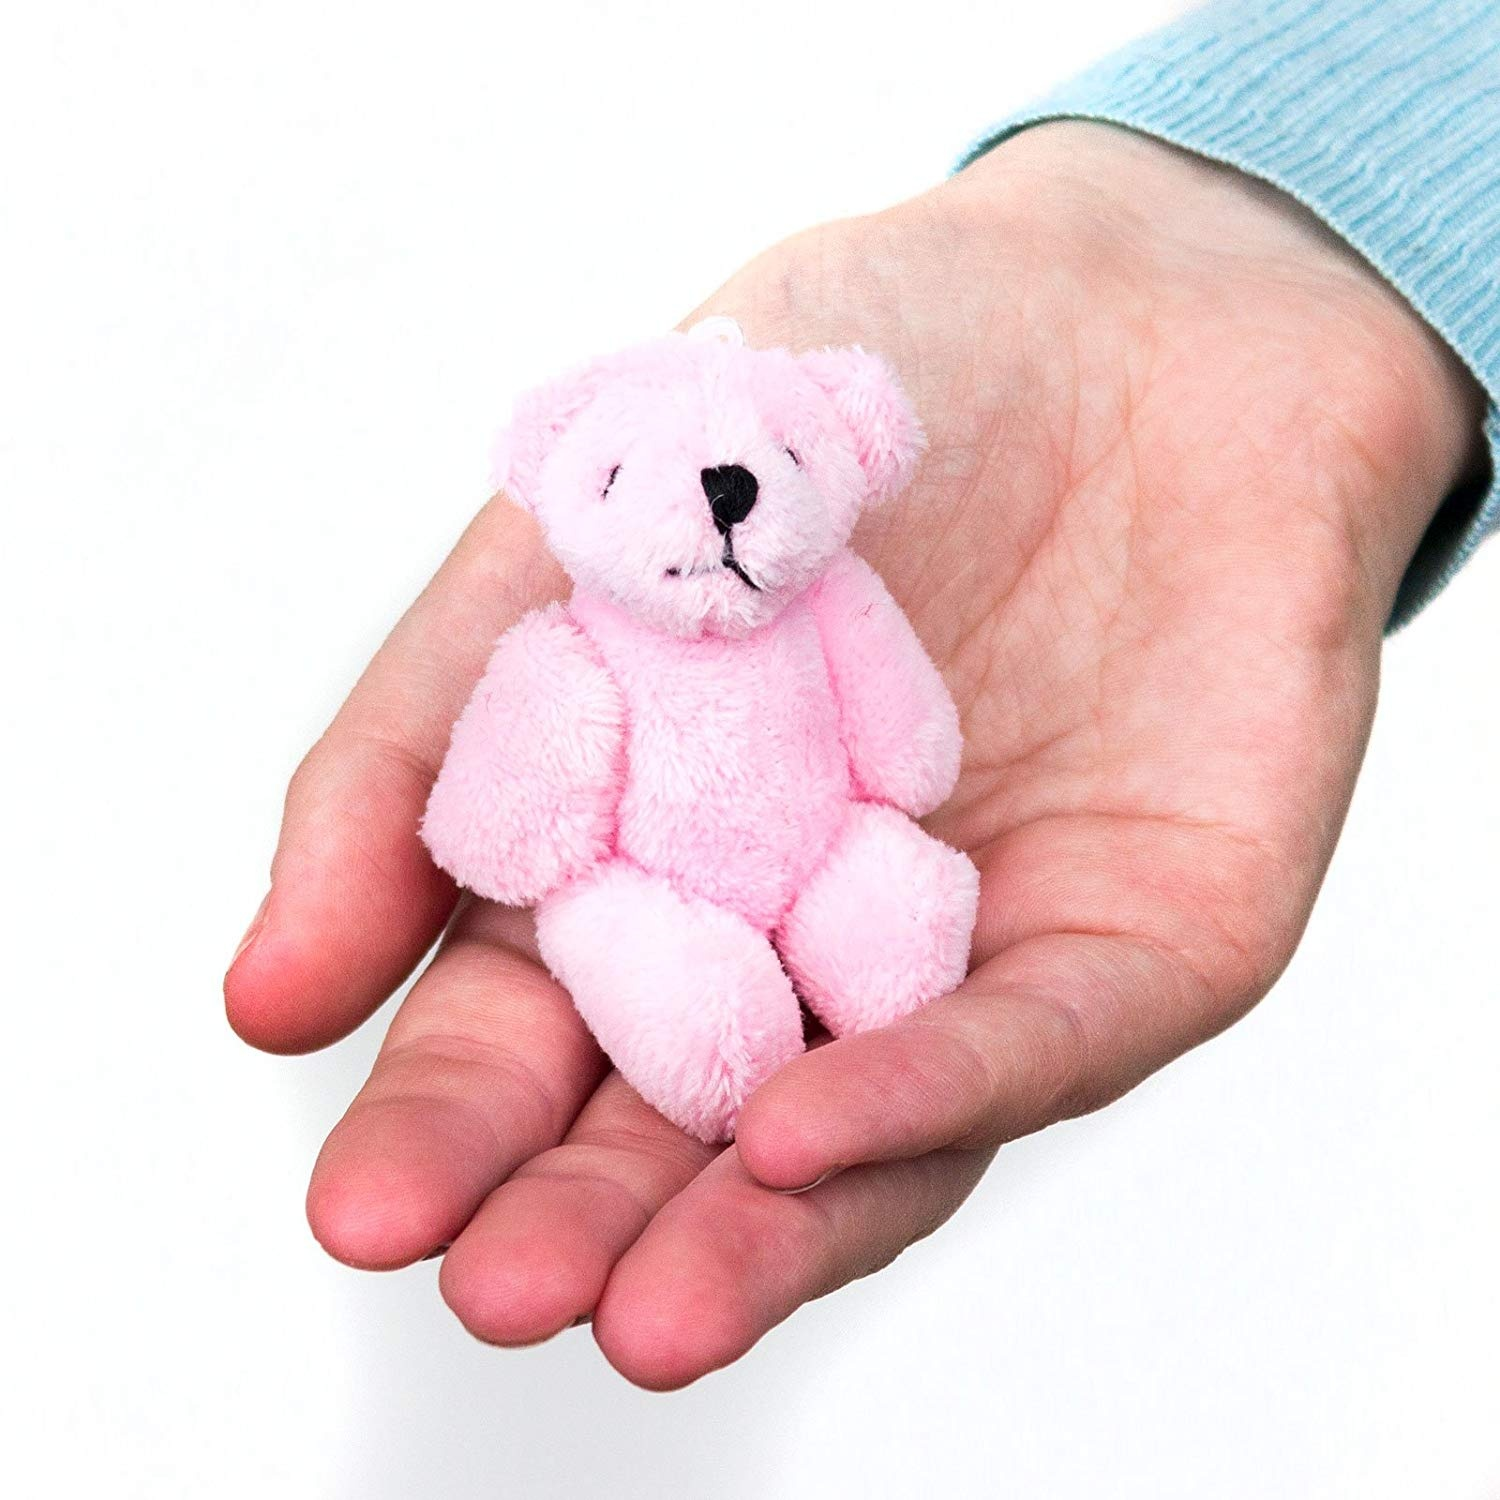 Pink Teddy Bear Toys Buy Online From Wrist